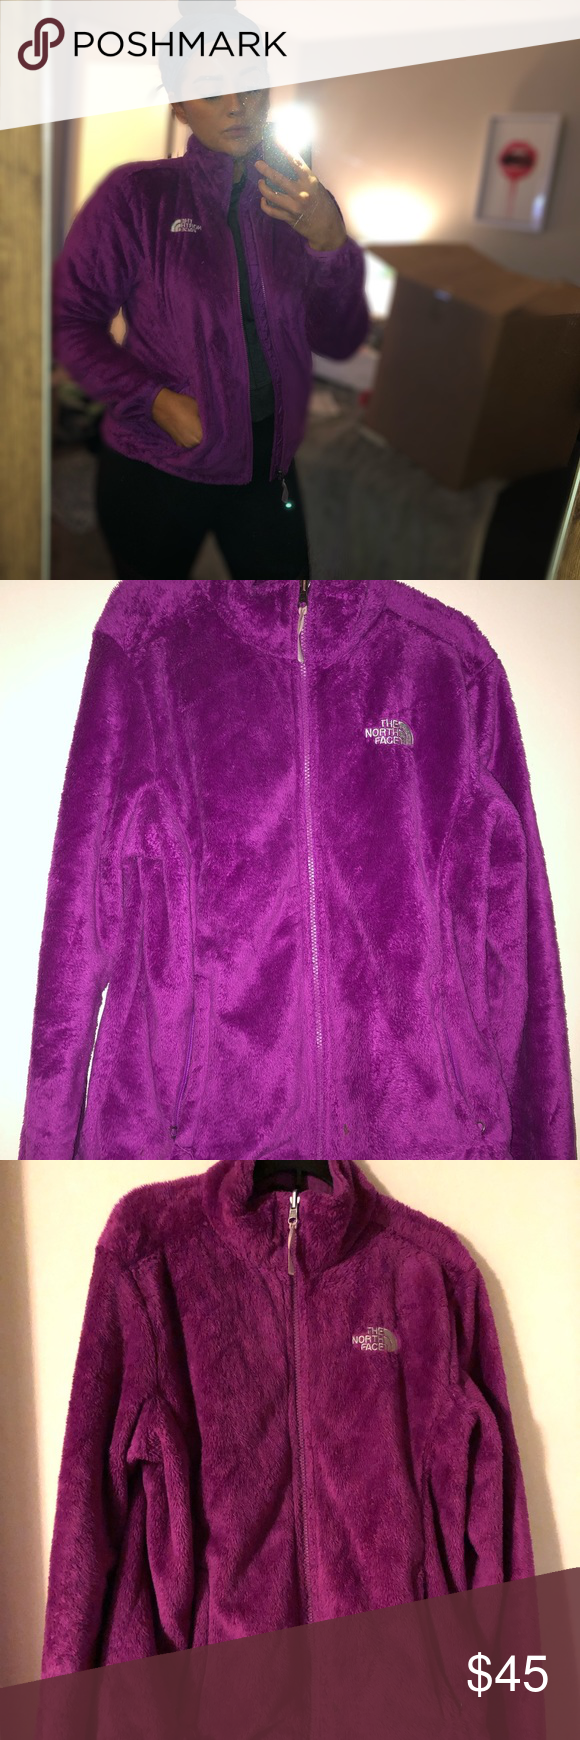 North Face Fleece Jacket Purple Worn 4x No Rips Tears Or Stains The North Face Jackets Coats North Face Fleece Jacket North Face Fleece Fleece Jacket [ 1740 x 580 Pixel ]